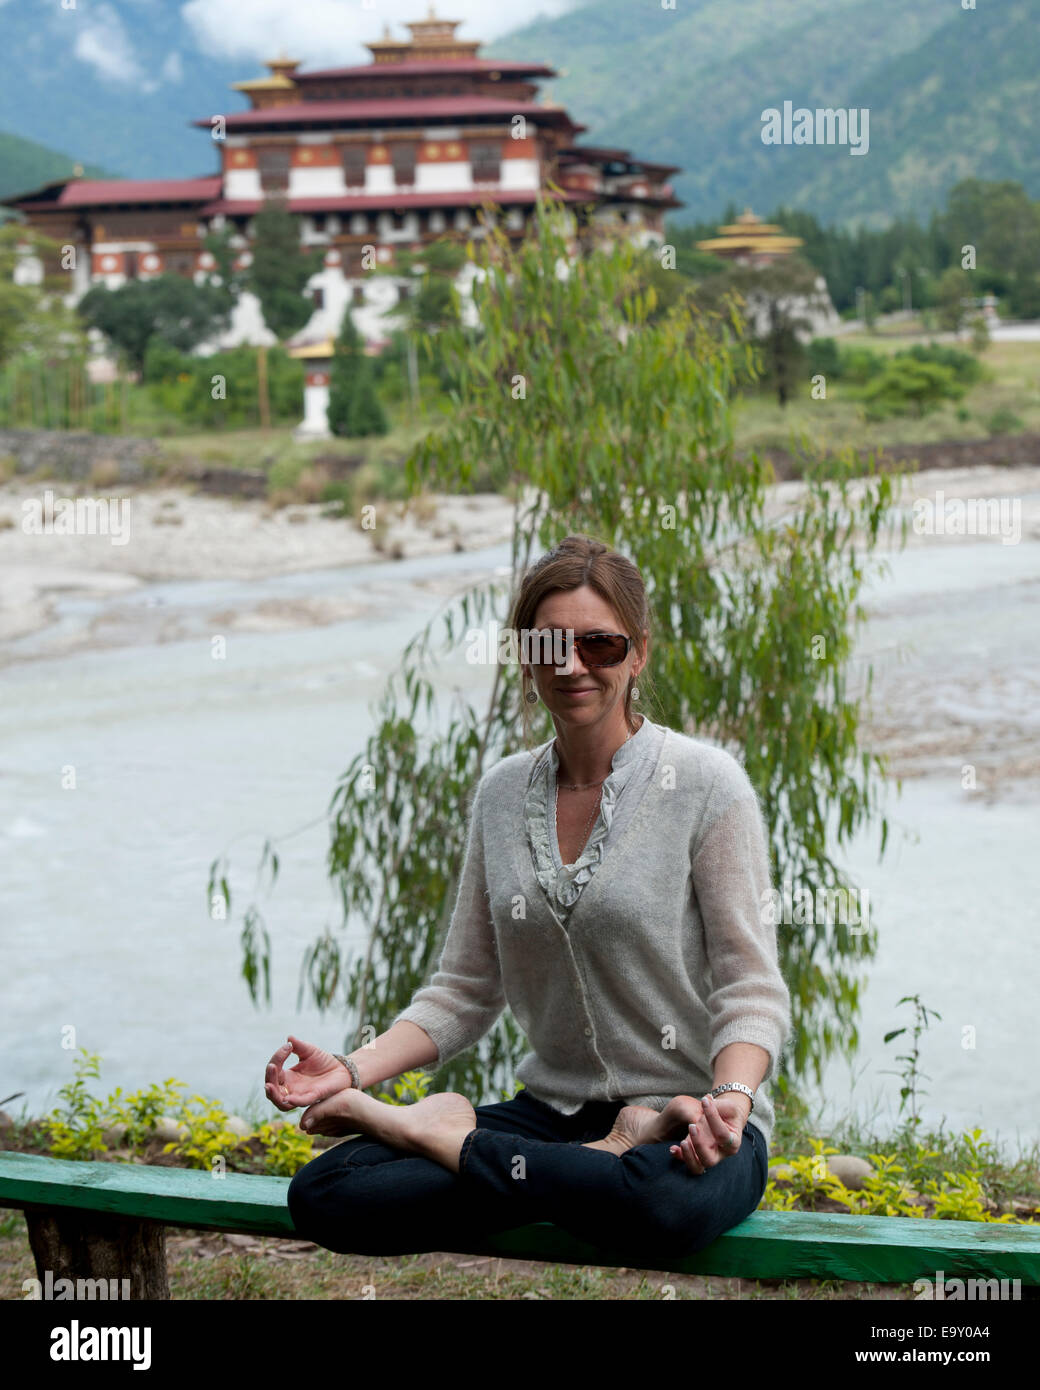 Woman meditating with Punakha Monastery in the background, Punakha, Bhutan - Stock Image